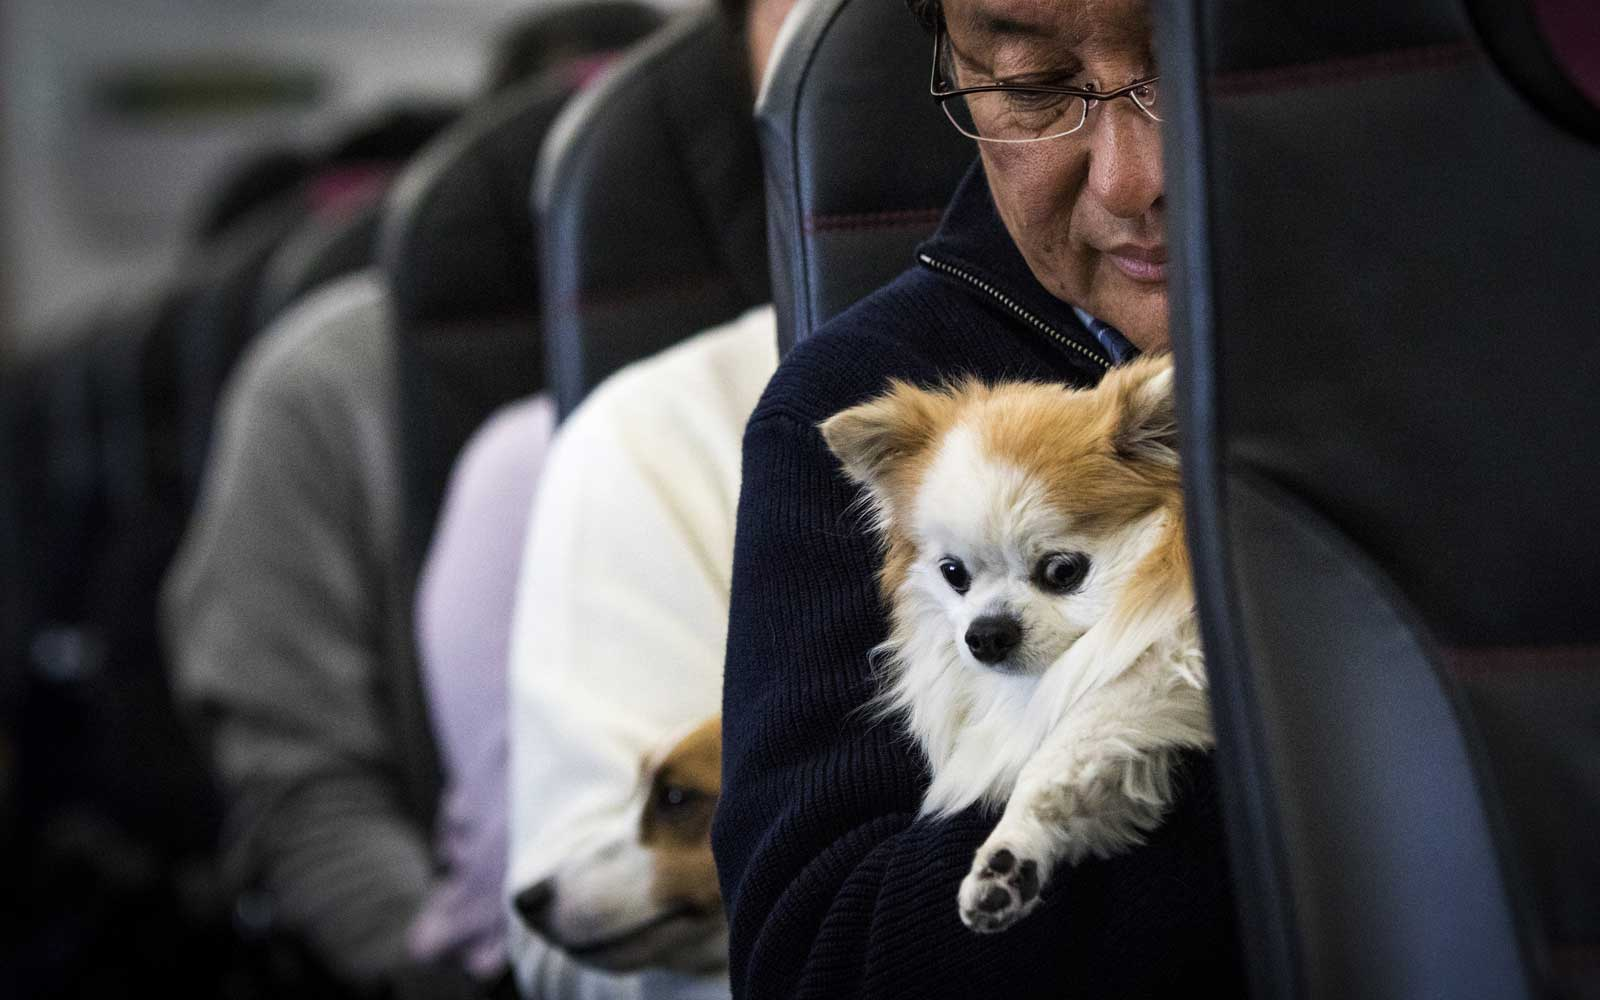 A man and his dog are seen in a plane in Chiba, Japan on January 27, 2017